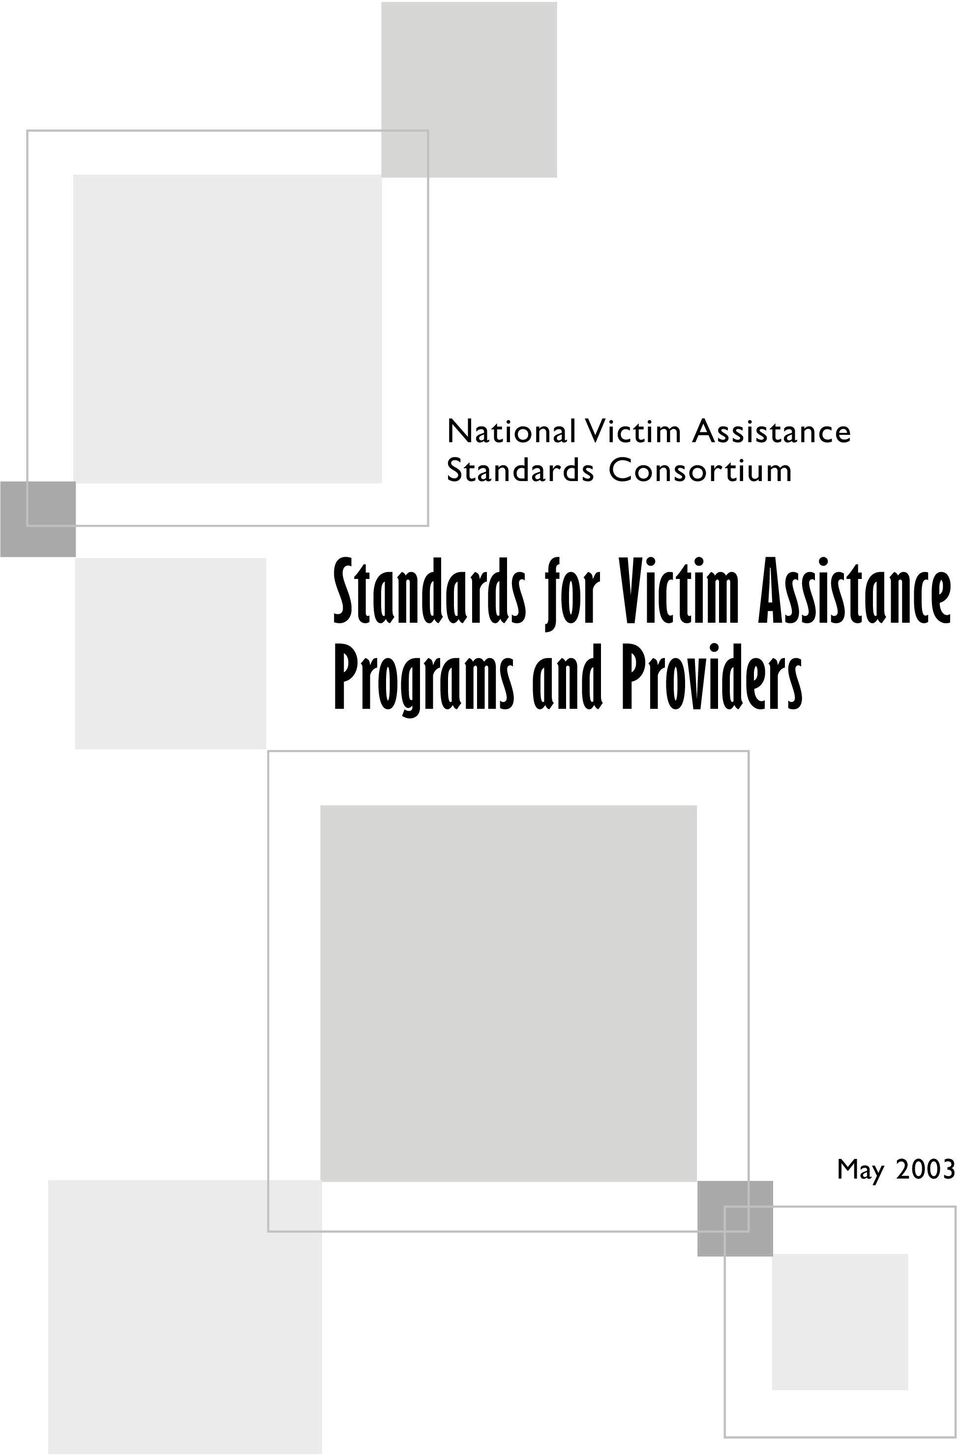 Standards for Victim